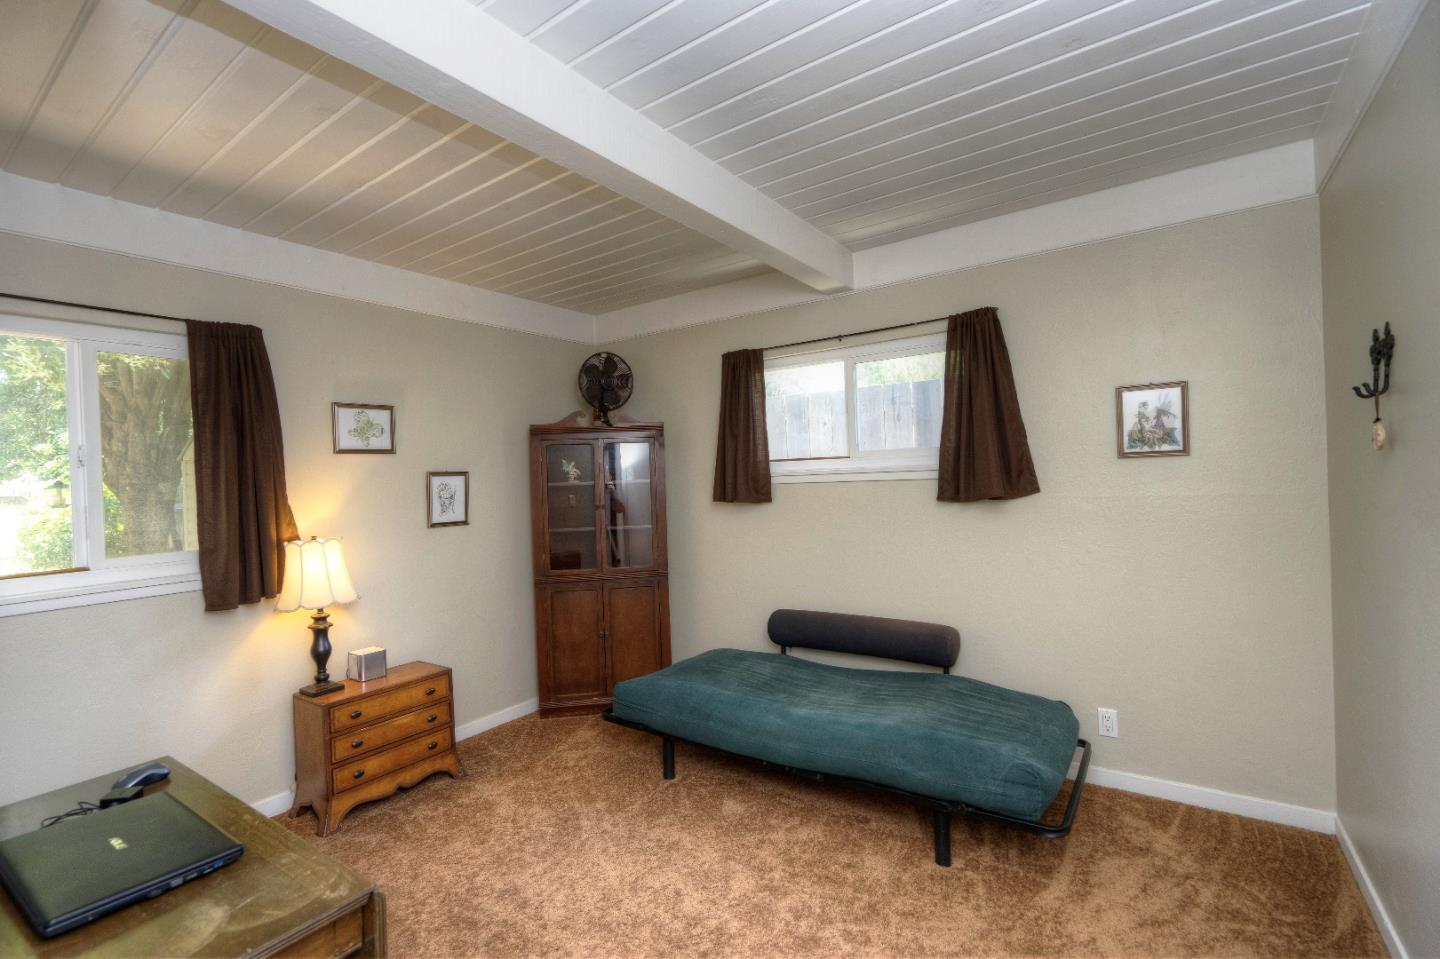 Additional photo for property listing at 738 Lilly Avenue  Hayward, カリフォルニア 94544 アメリカ合衆国